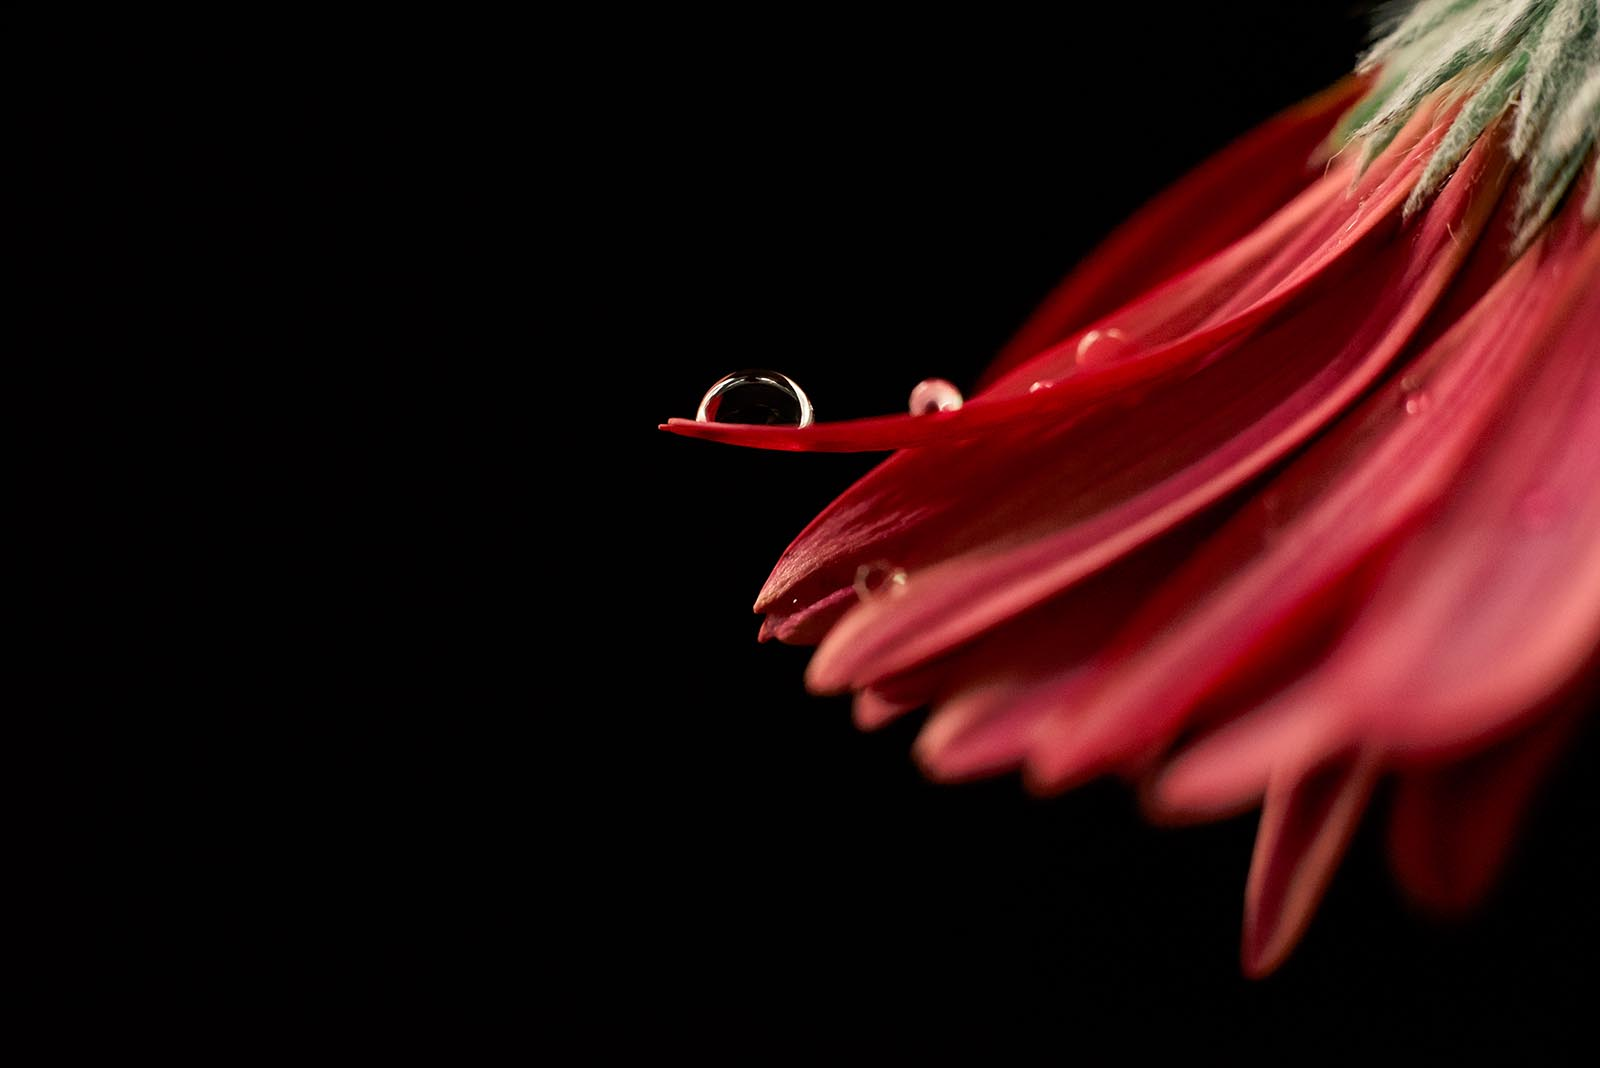 Trying other photography genres makes you a stronger photographer, macro image of red flower.